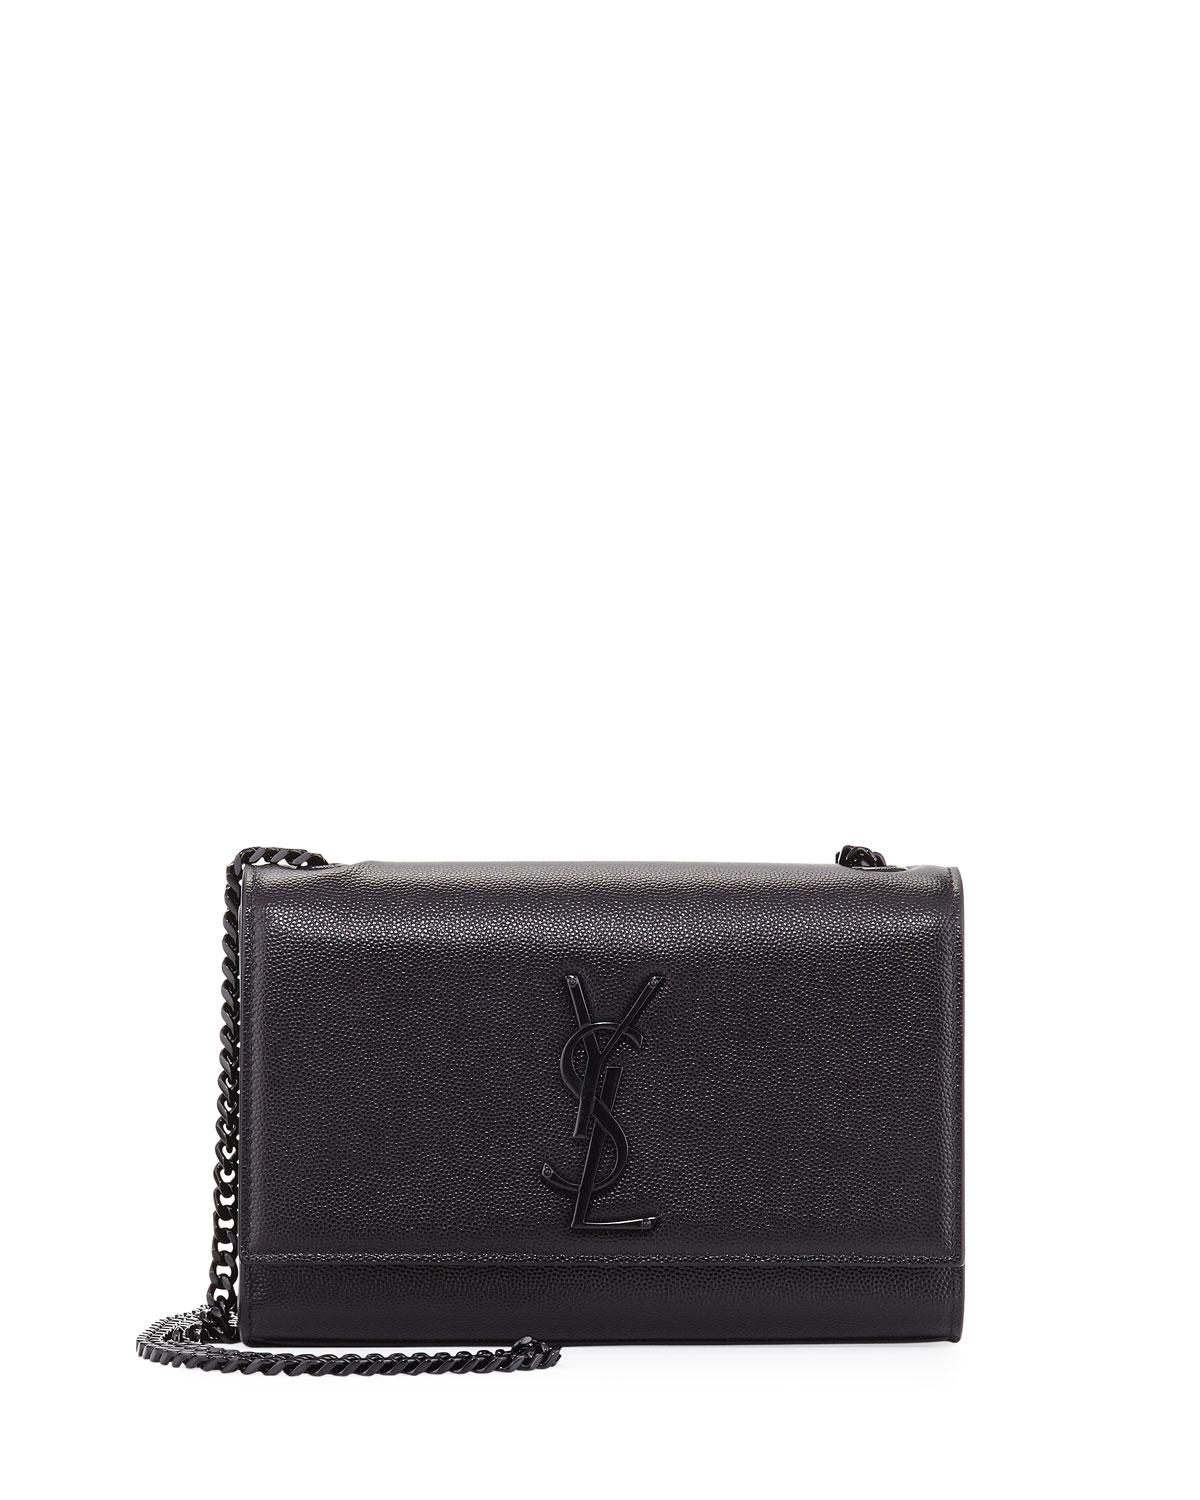 c9d6a2b99e Lyst - Saint Laurent Kate Monogram Ysl Small Chain Shoulder Bag in Black